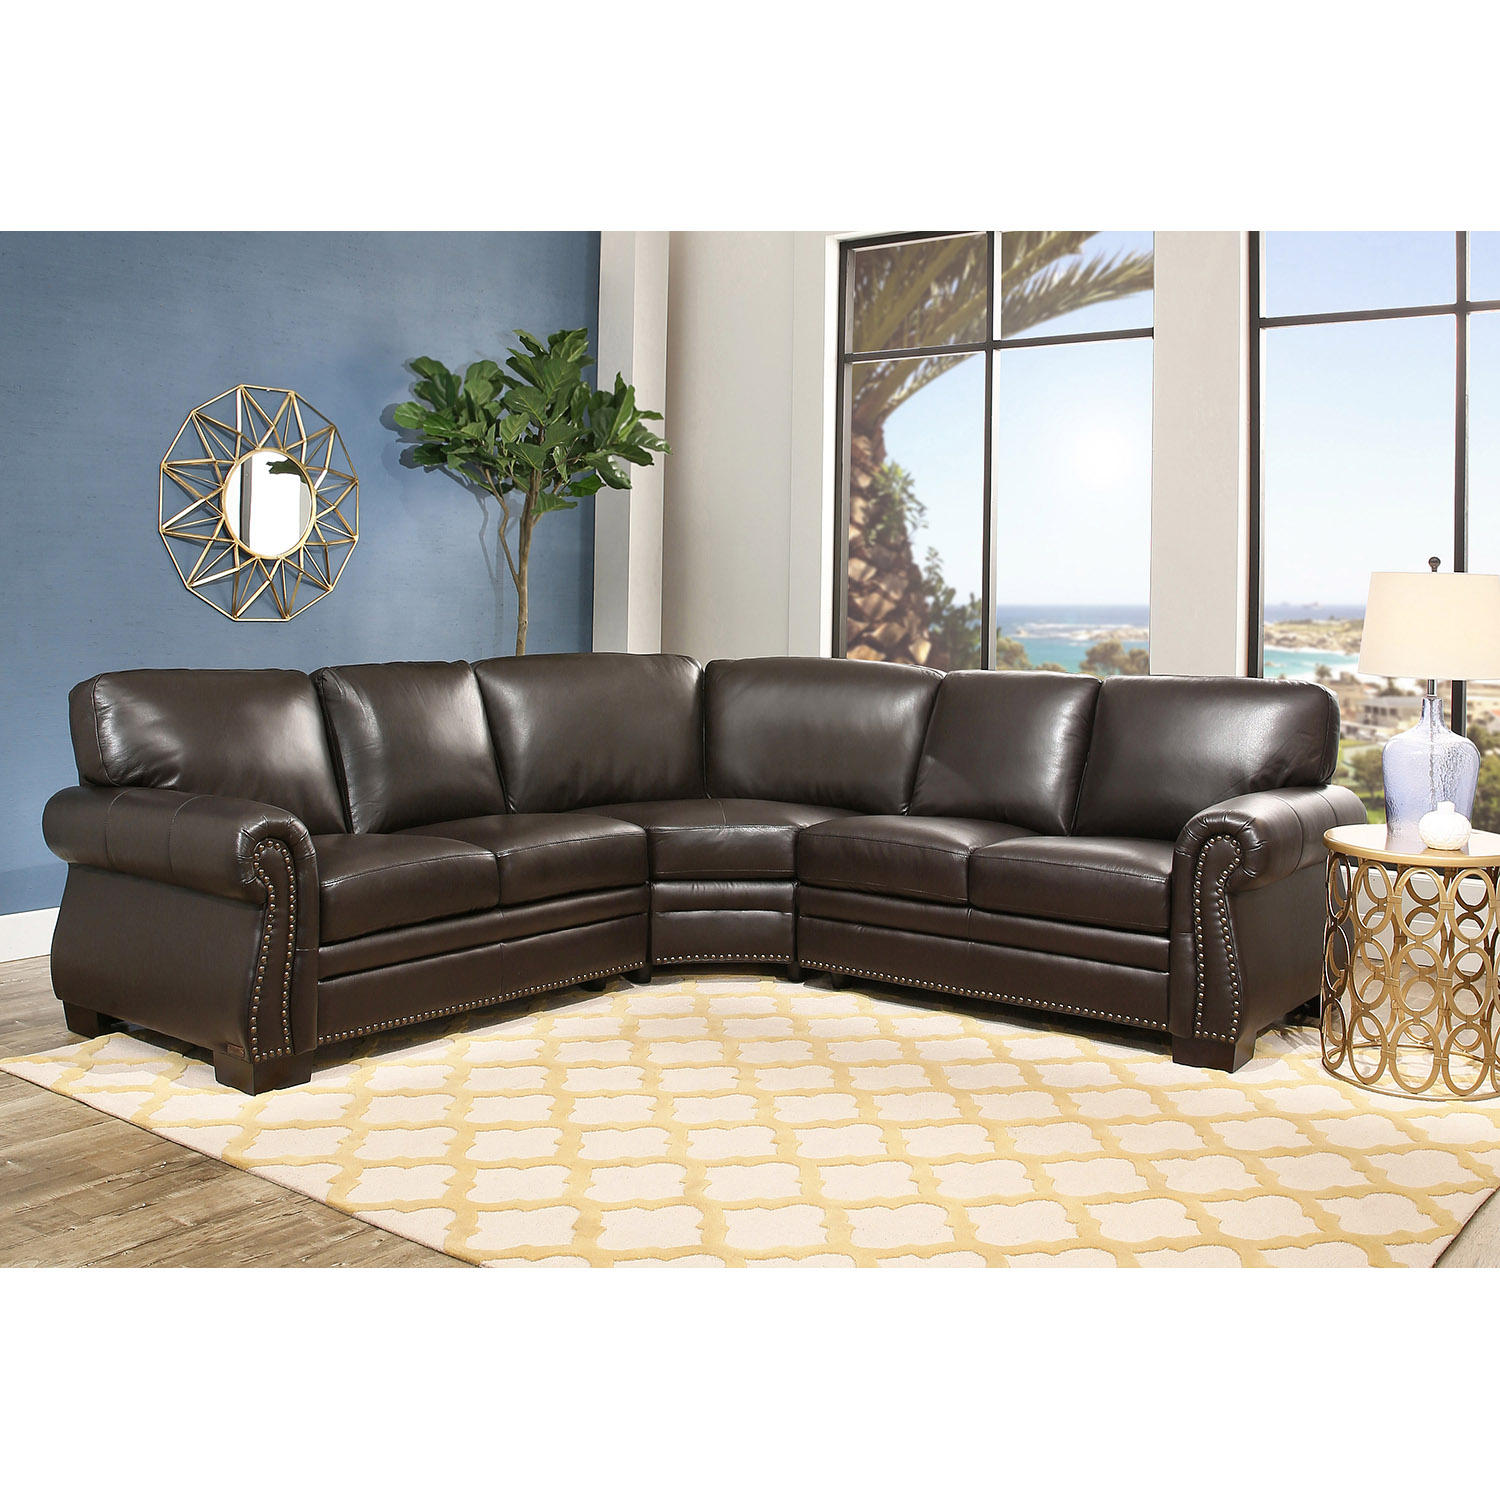 Abbyson Living Blakely Top-Grain Leather Sectional